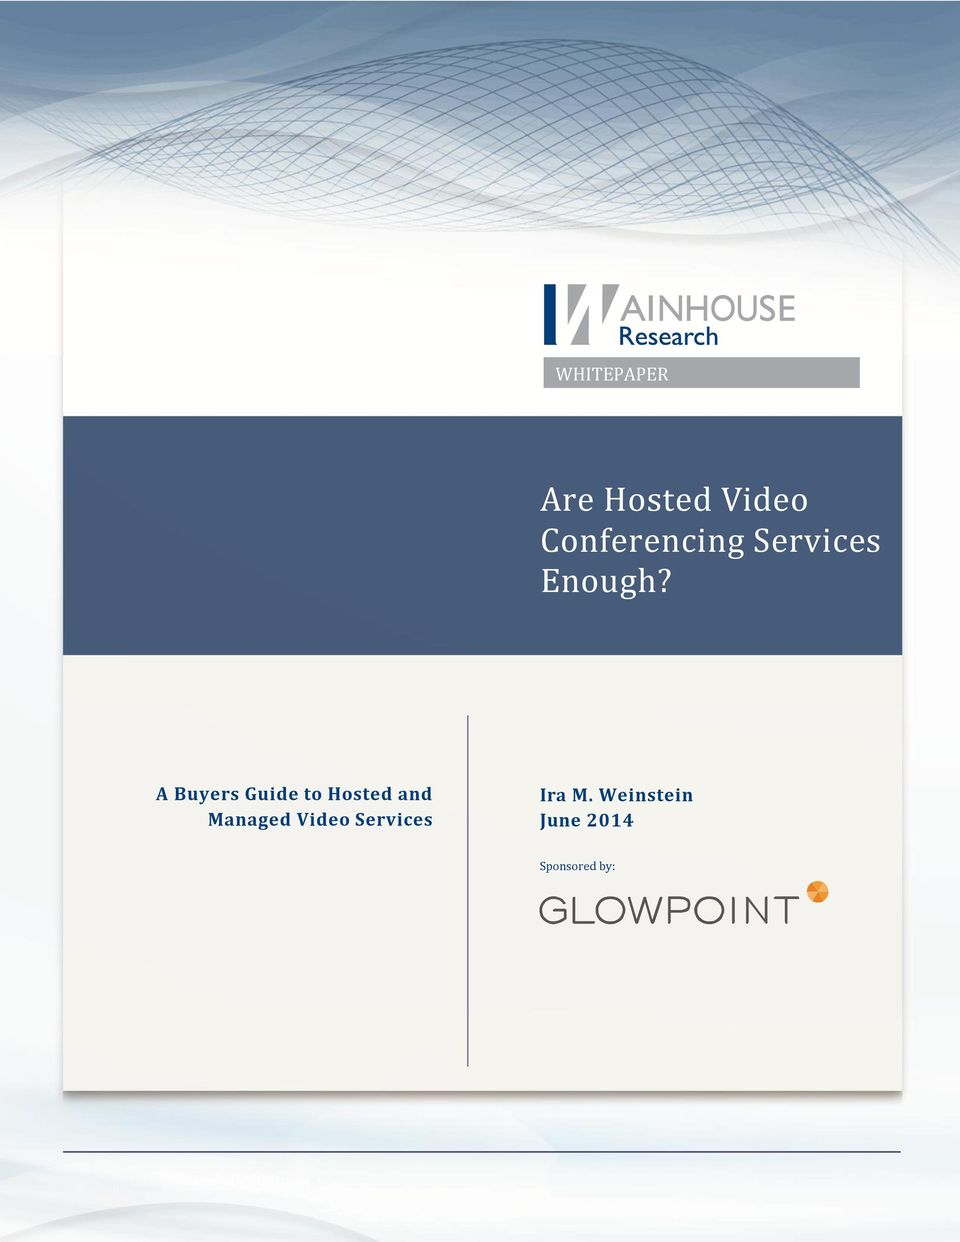 A Buyers Guide to Hosted and Managed Video